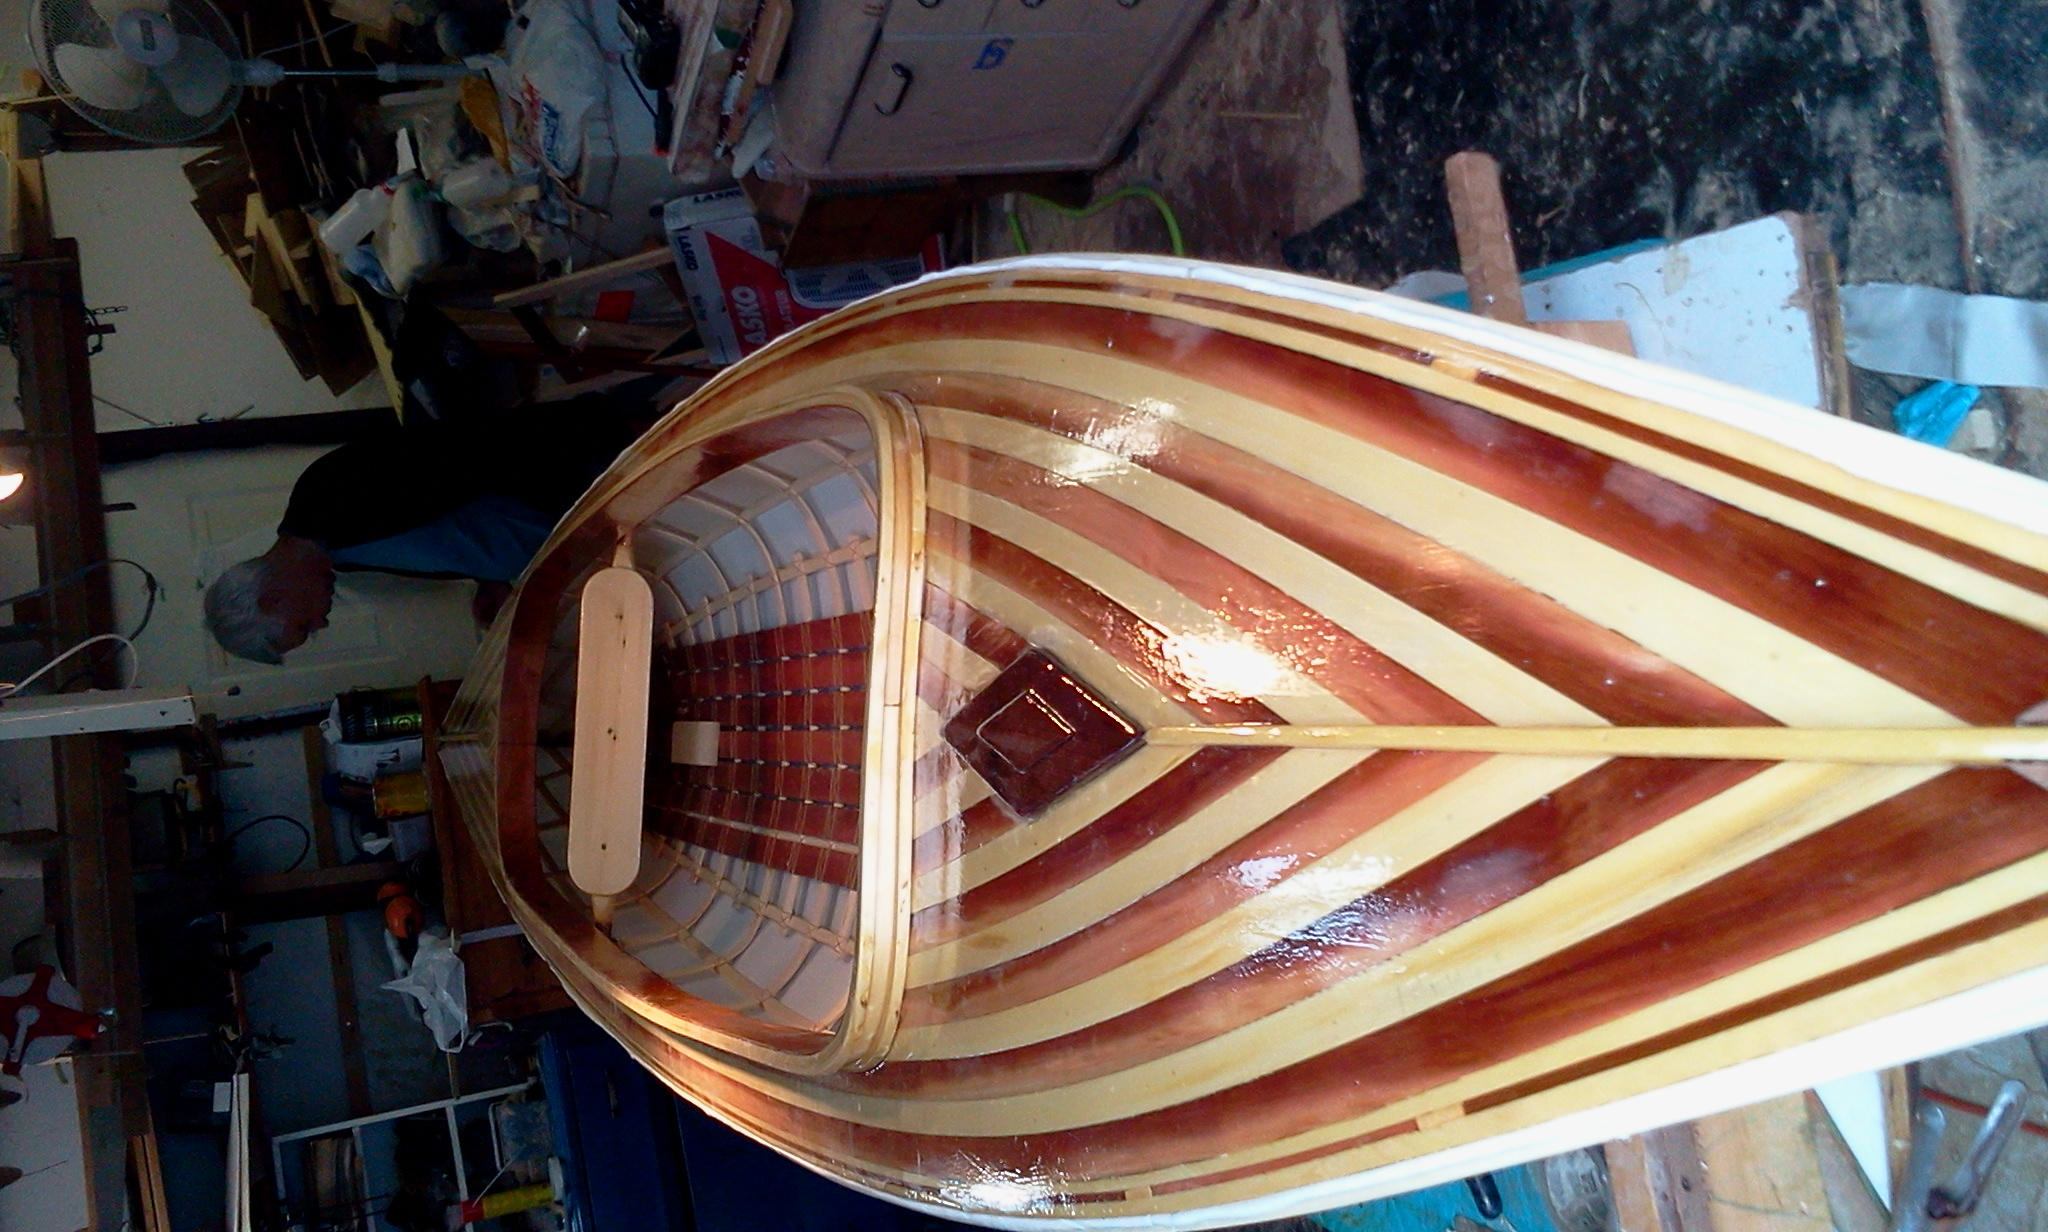 Canoe Kits Kayak Rowboat Kits How To Build A Boat Video